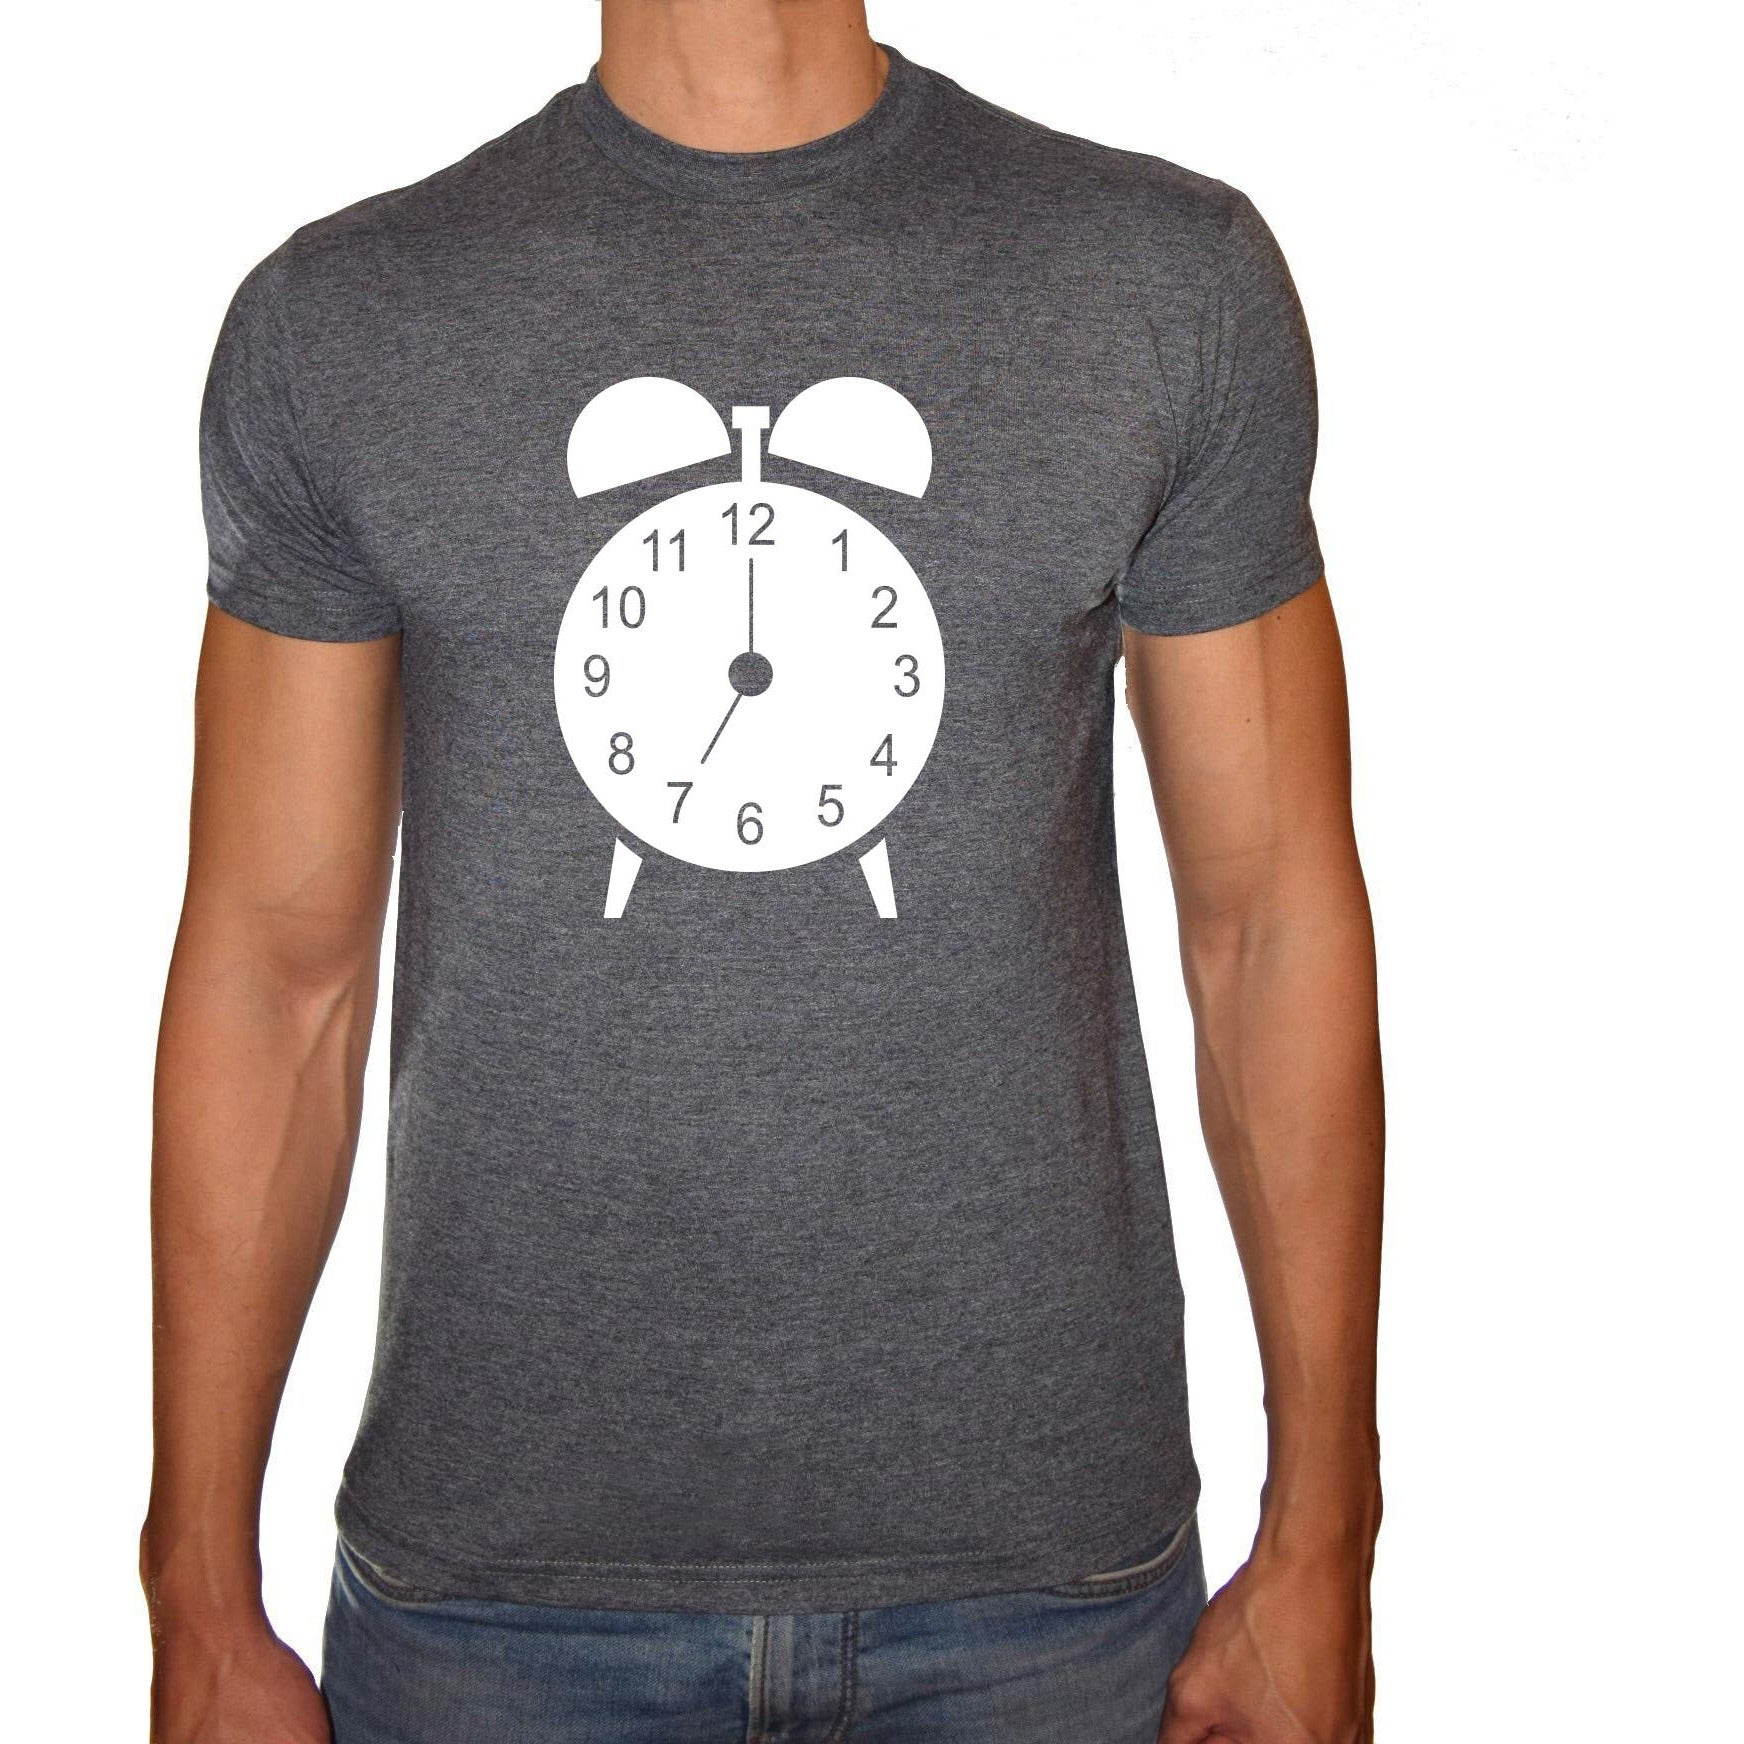 Phoenix CHARCOAL Round Neck Printed T-Shirt Men(clock)